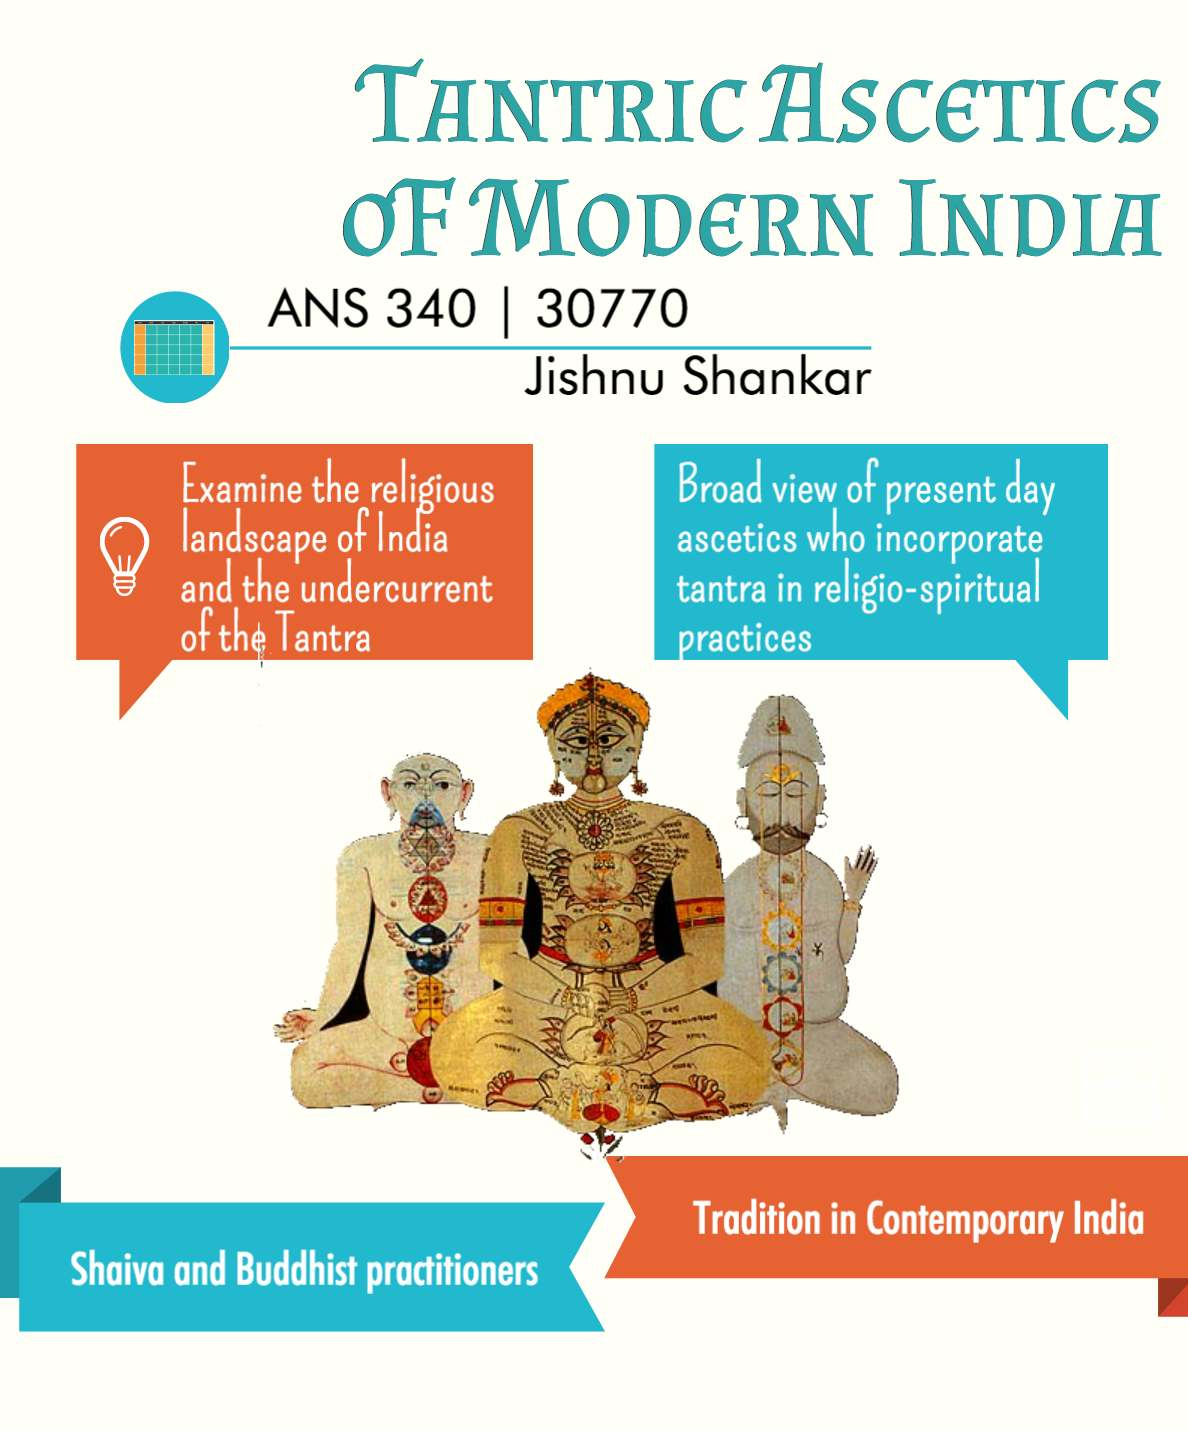 Course Spotlight: ANS 340 Tantric Ascetics Modern India